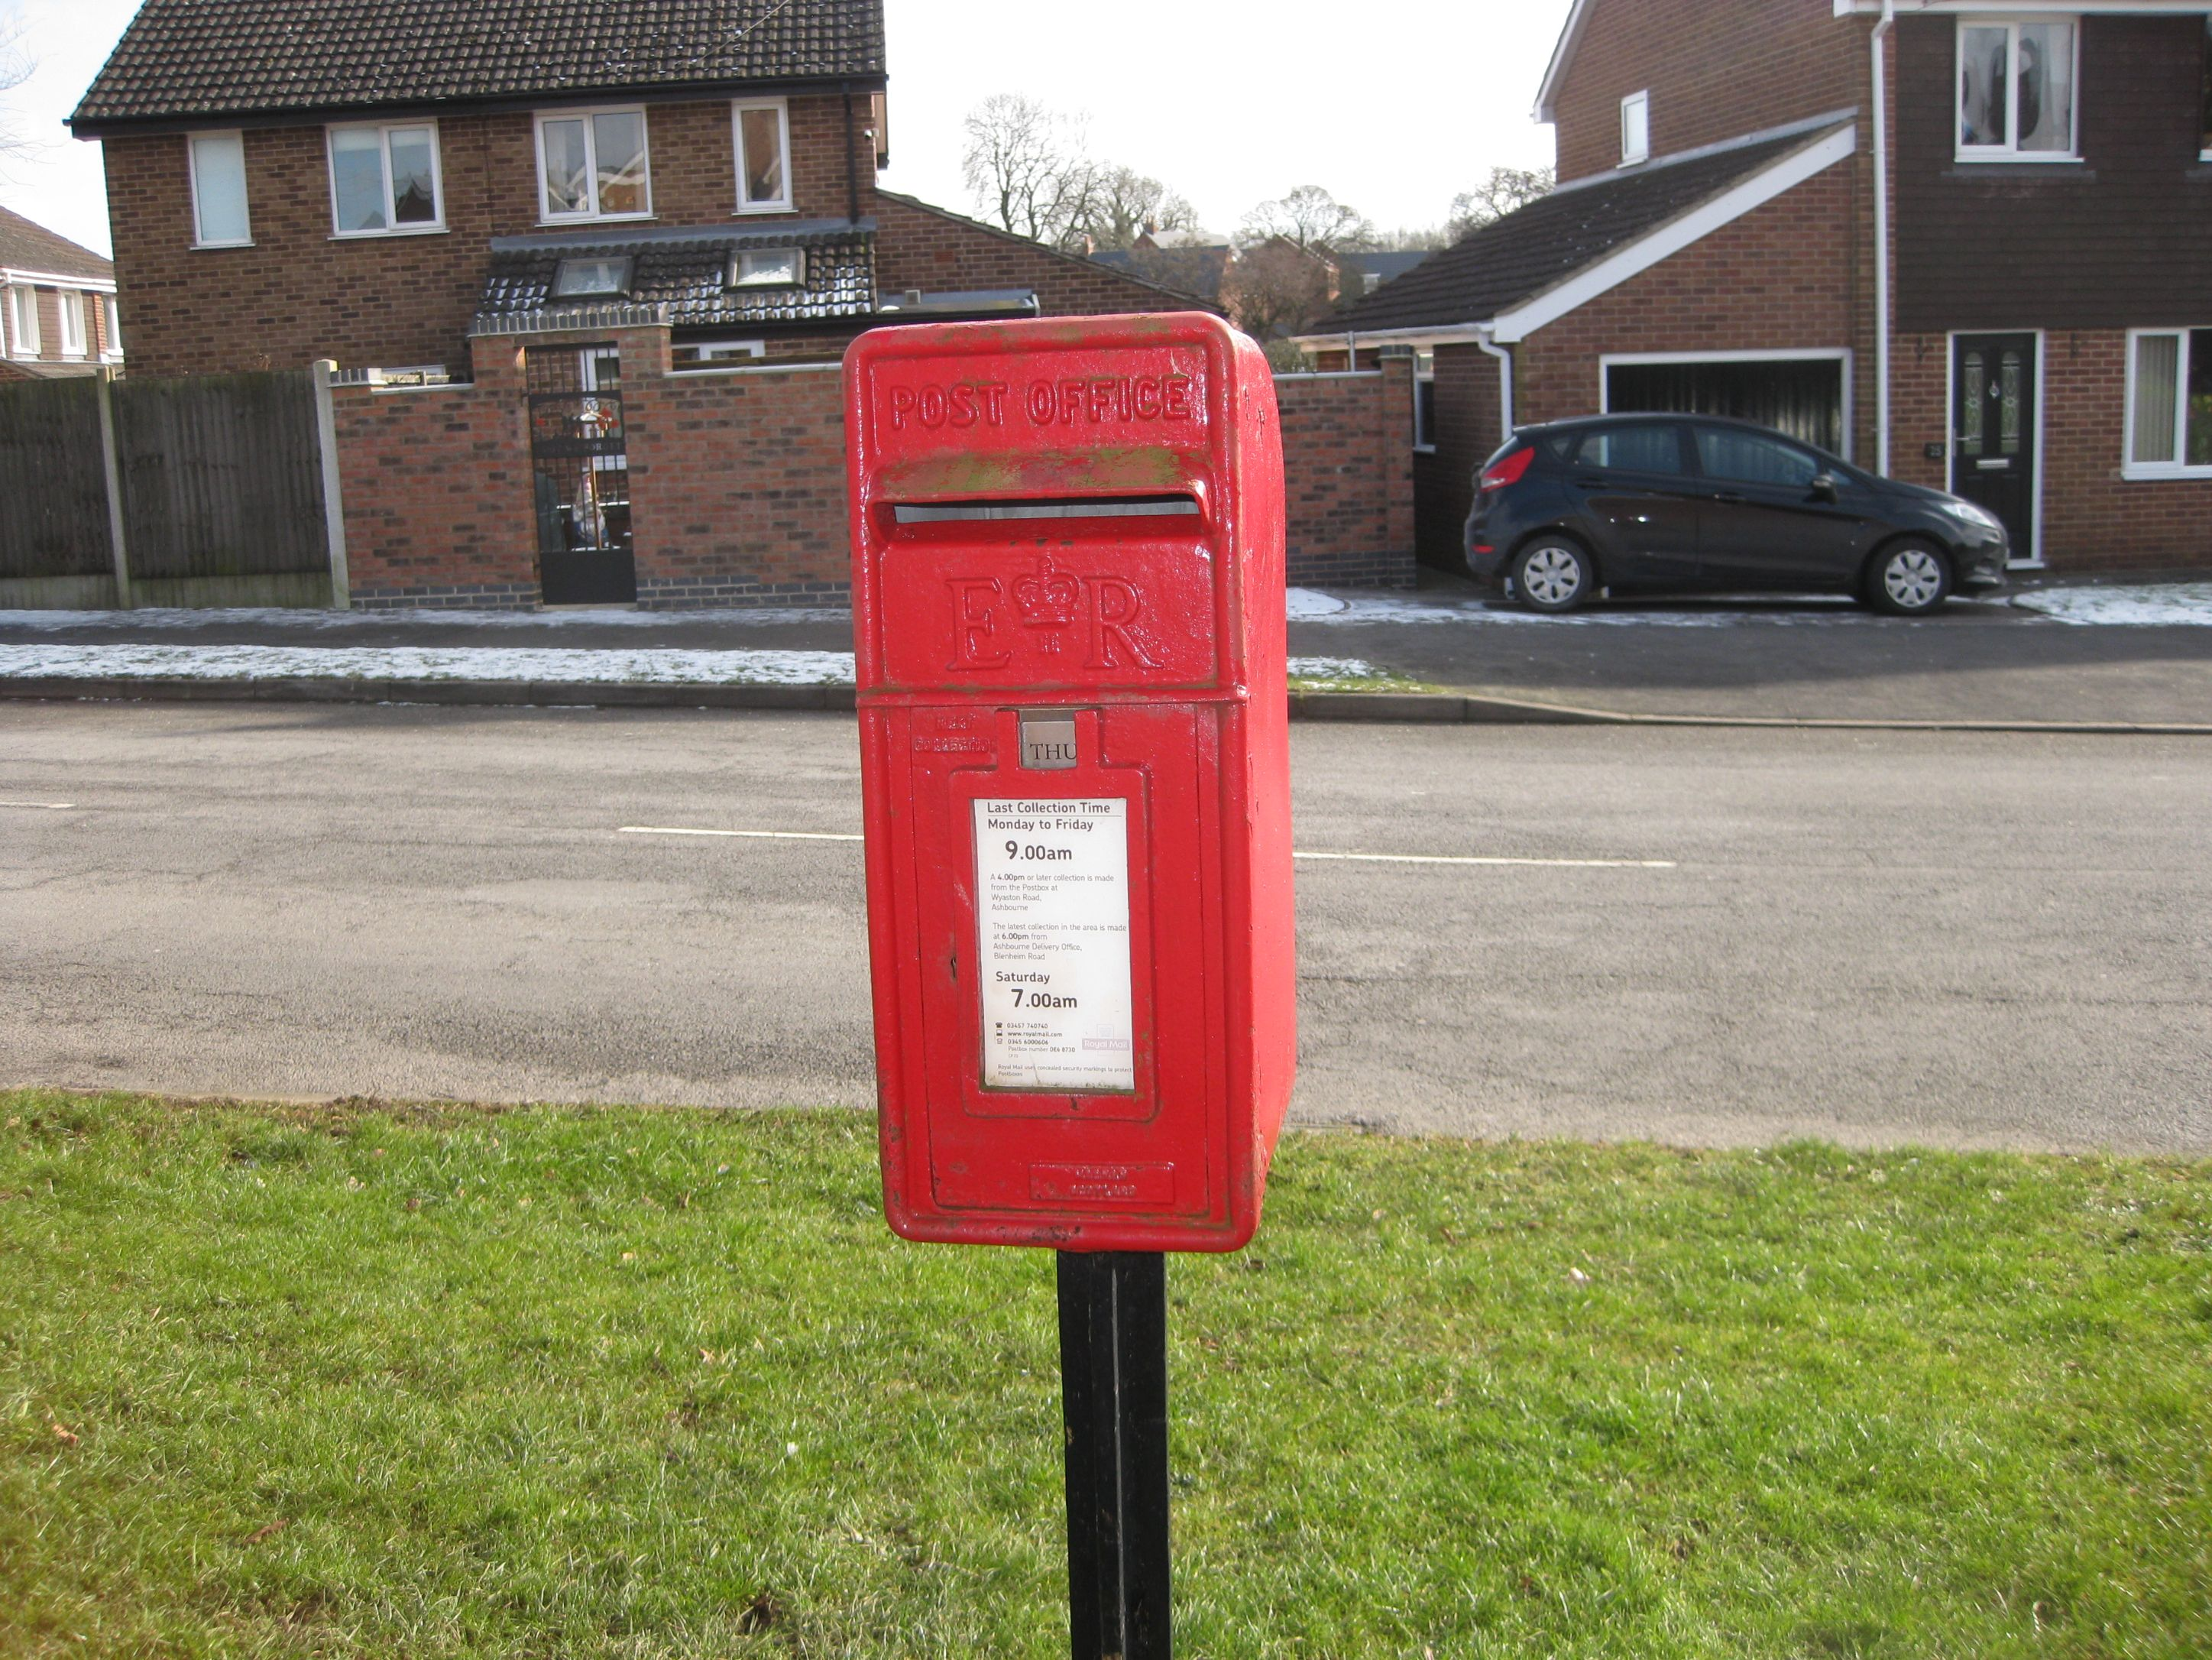 Postbox at Beech Drive junction (Hilltop end)